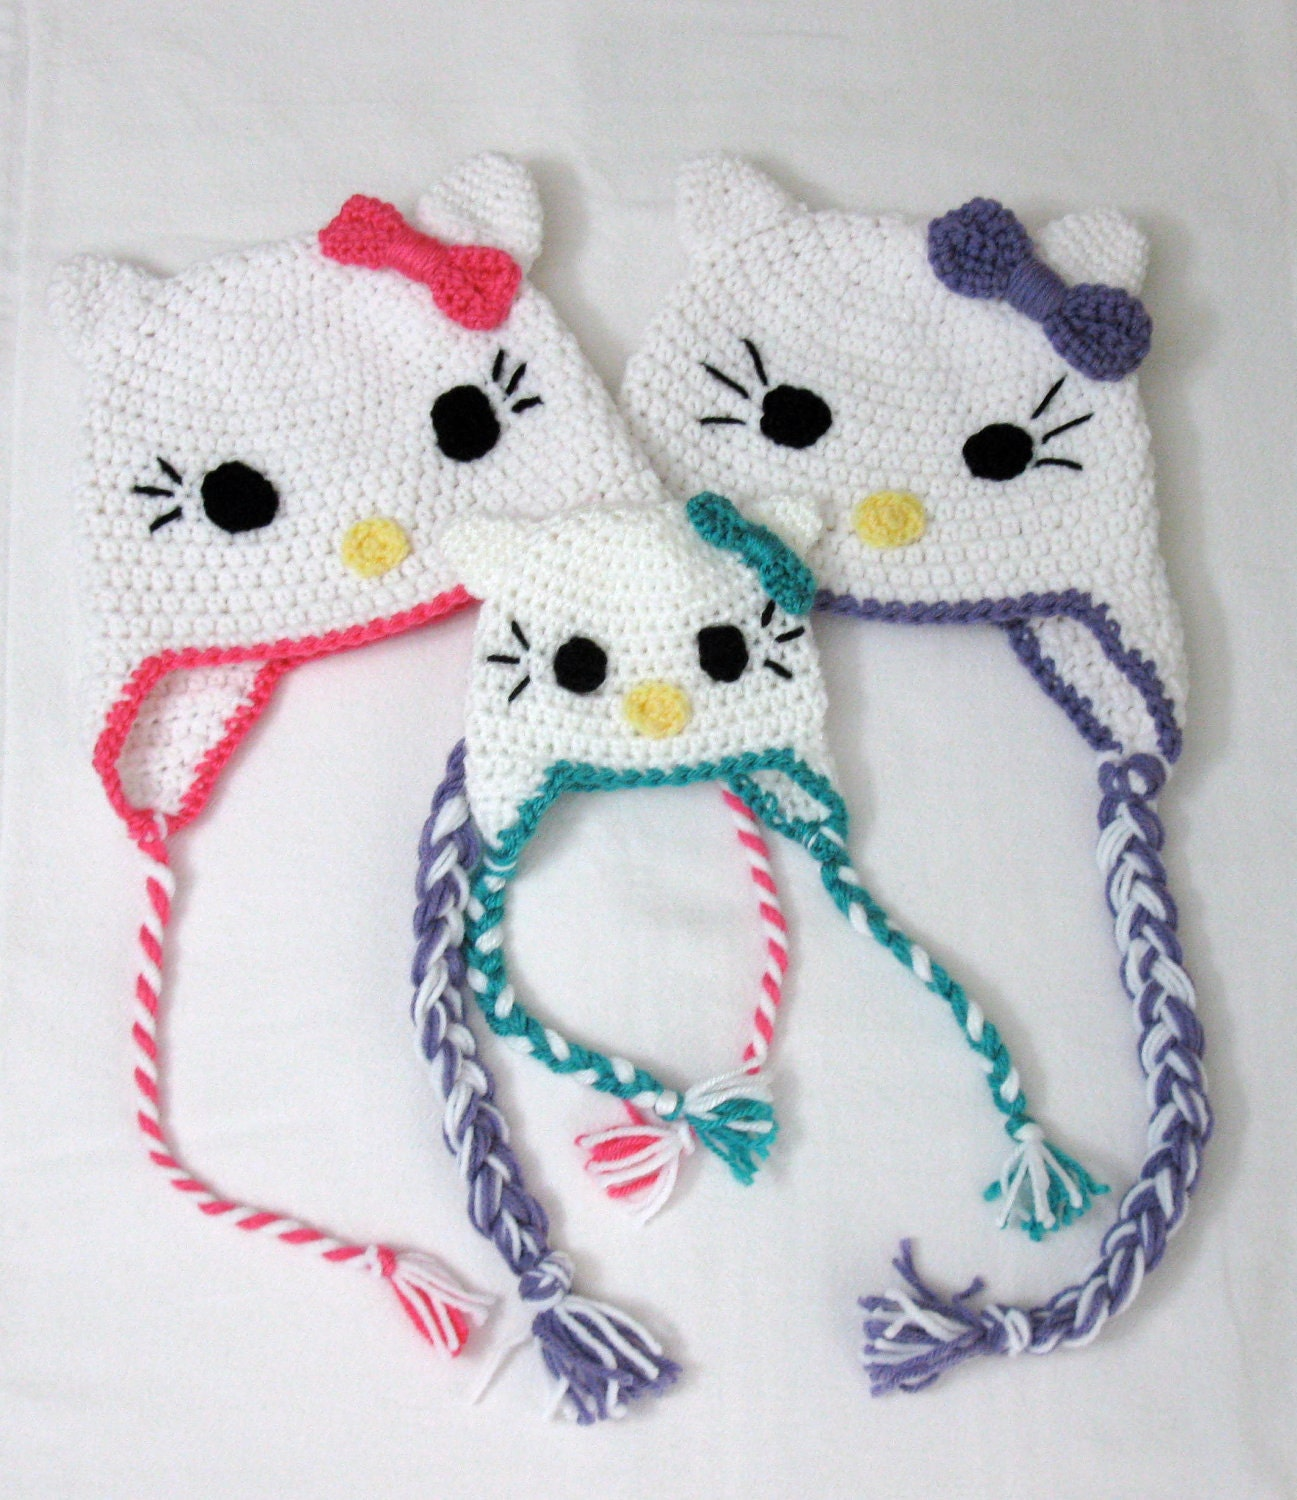 Free Crochet Pattern Hello Kitty Hat : HELLO KITTY CROCHET PATTERN How To Crochet